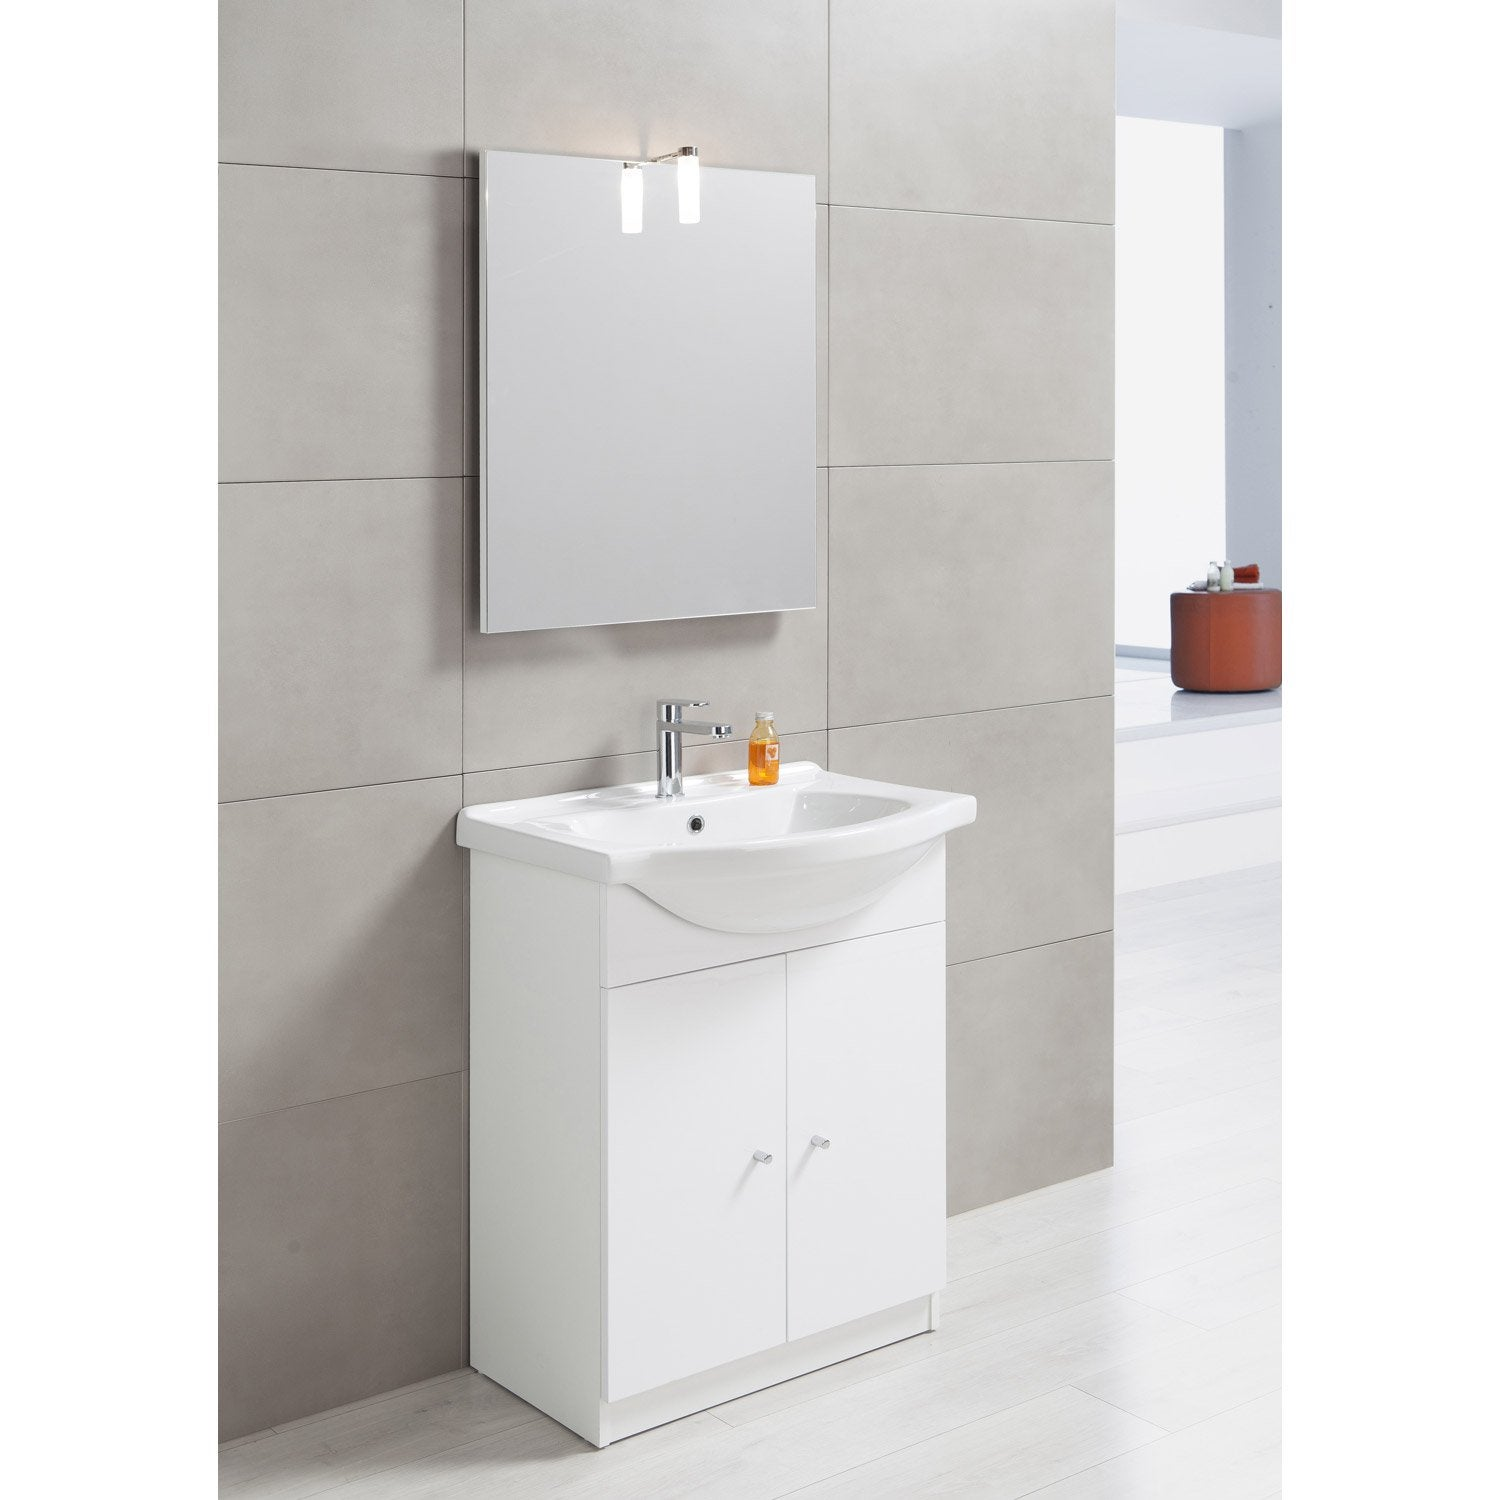 Meuble vasque 65 cm bianca leroy merlin for Meuble salle de bain double vasque leroy merlin